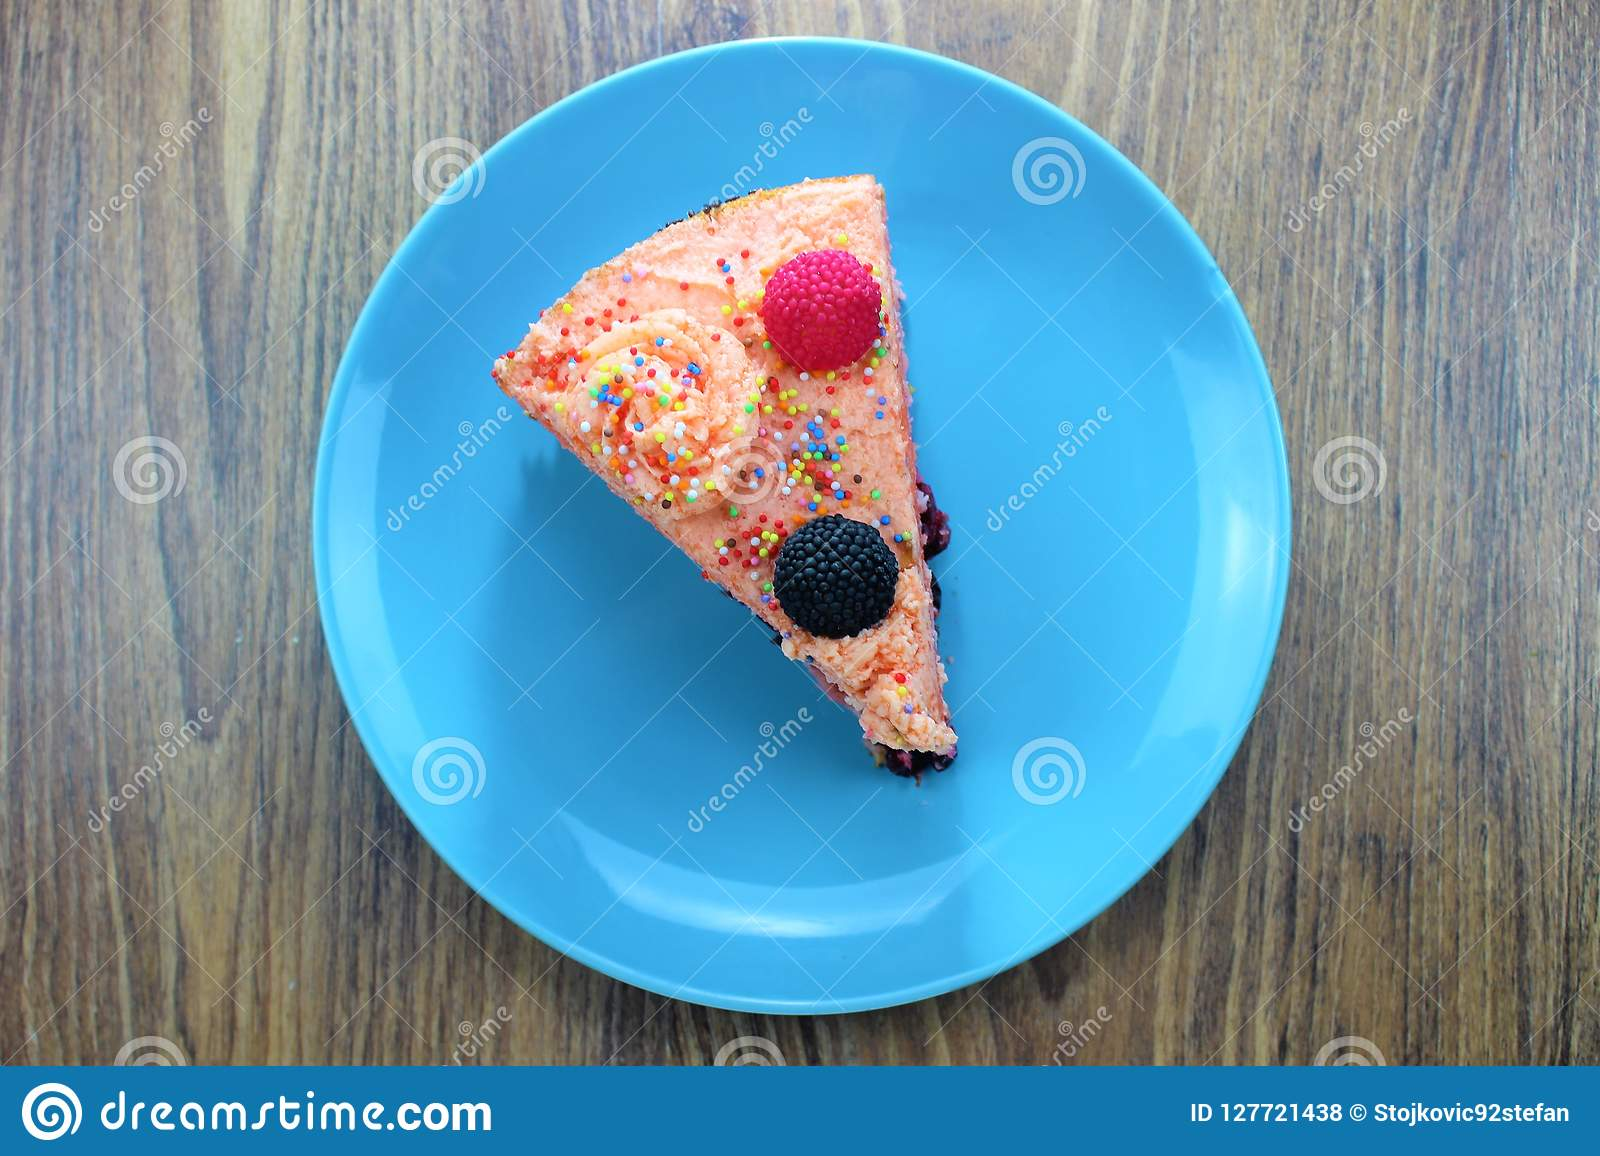 Delicious cake on a blue and white plate with chocolateTasty cake with strawberries, blackberries and colorful sprinkles on the bl